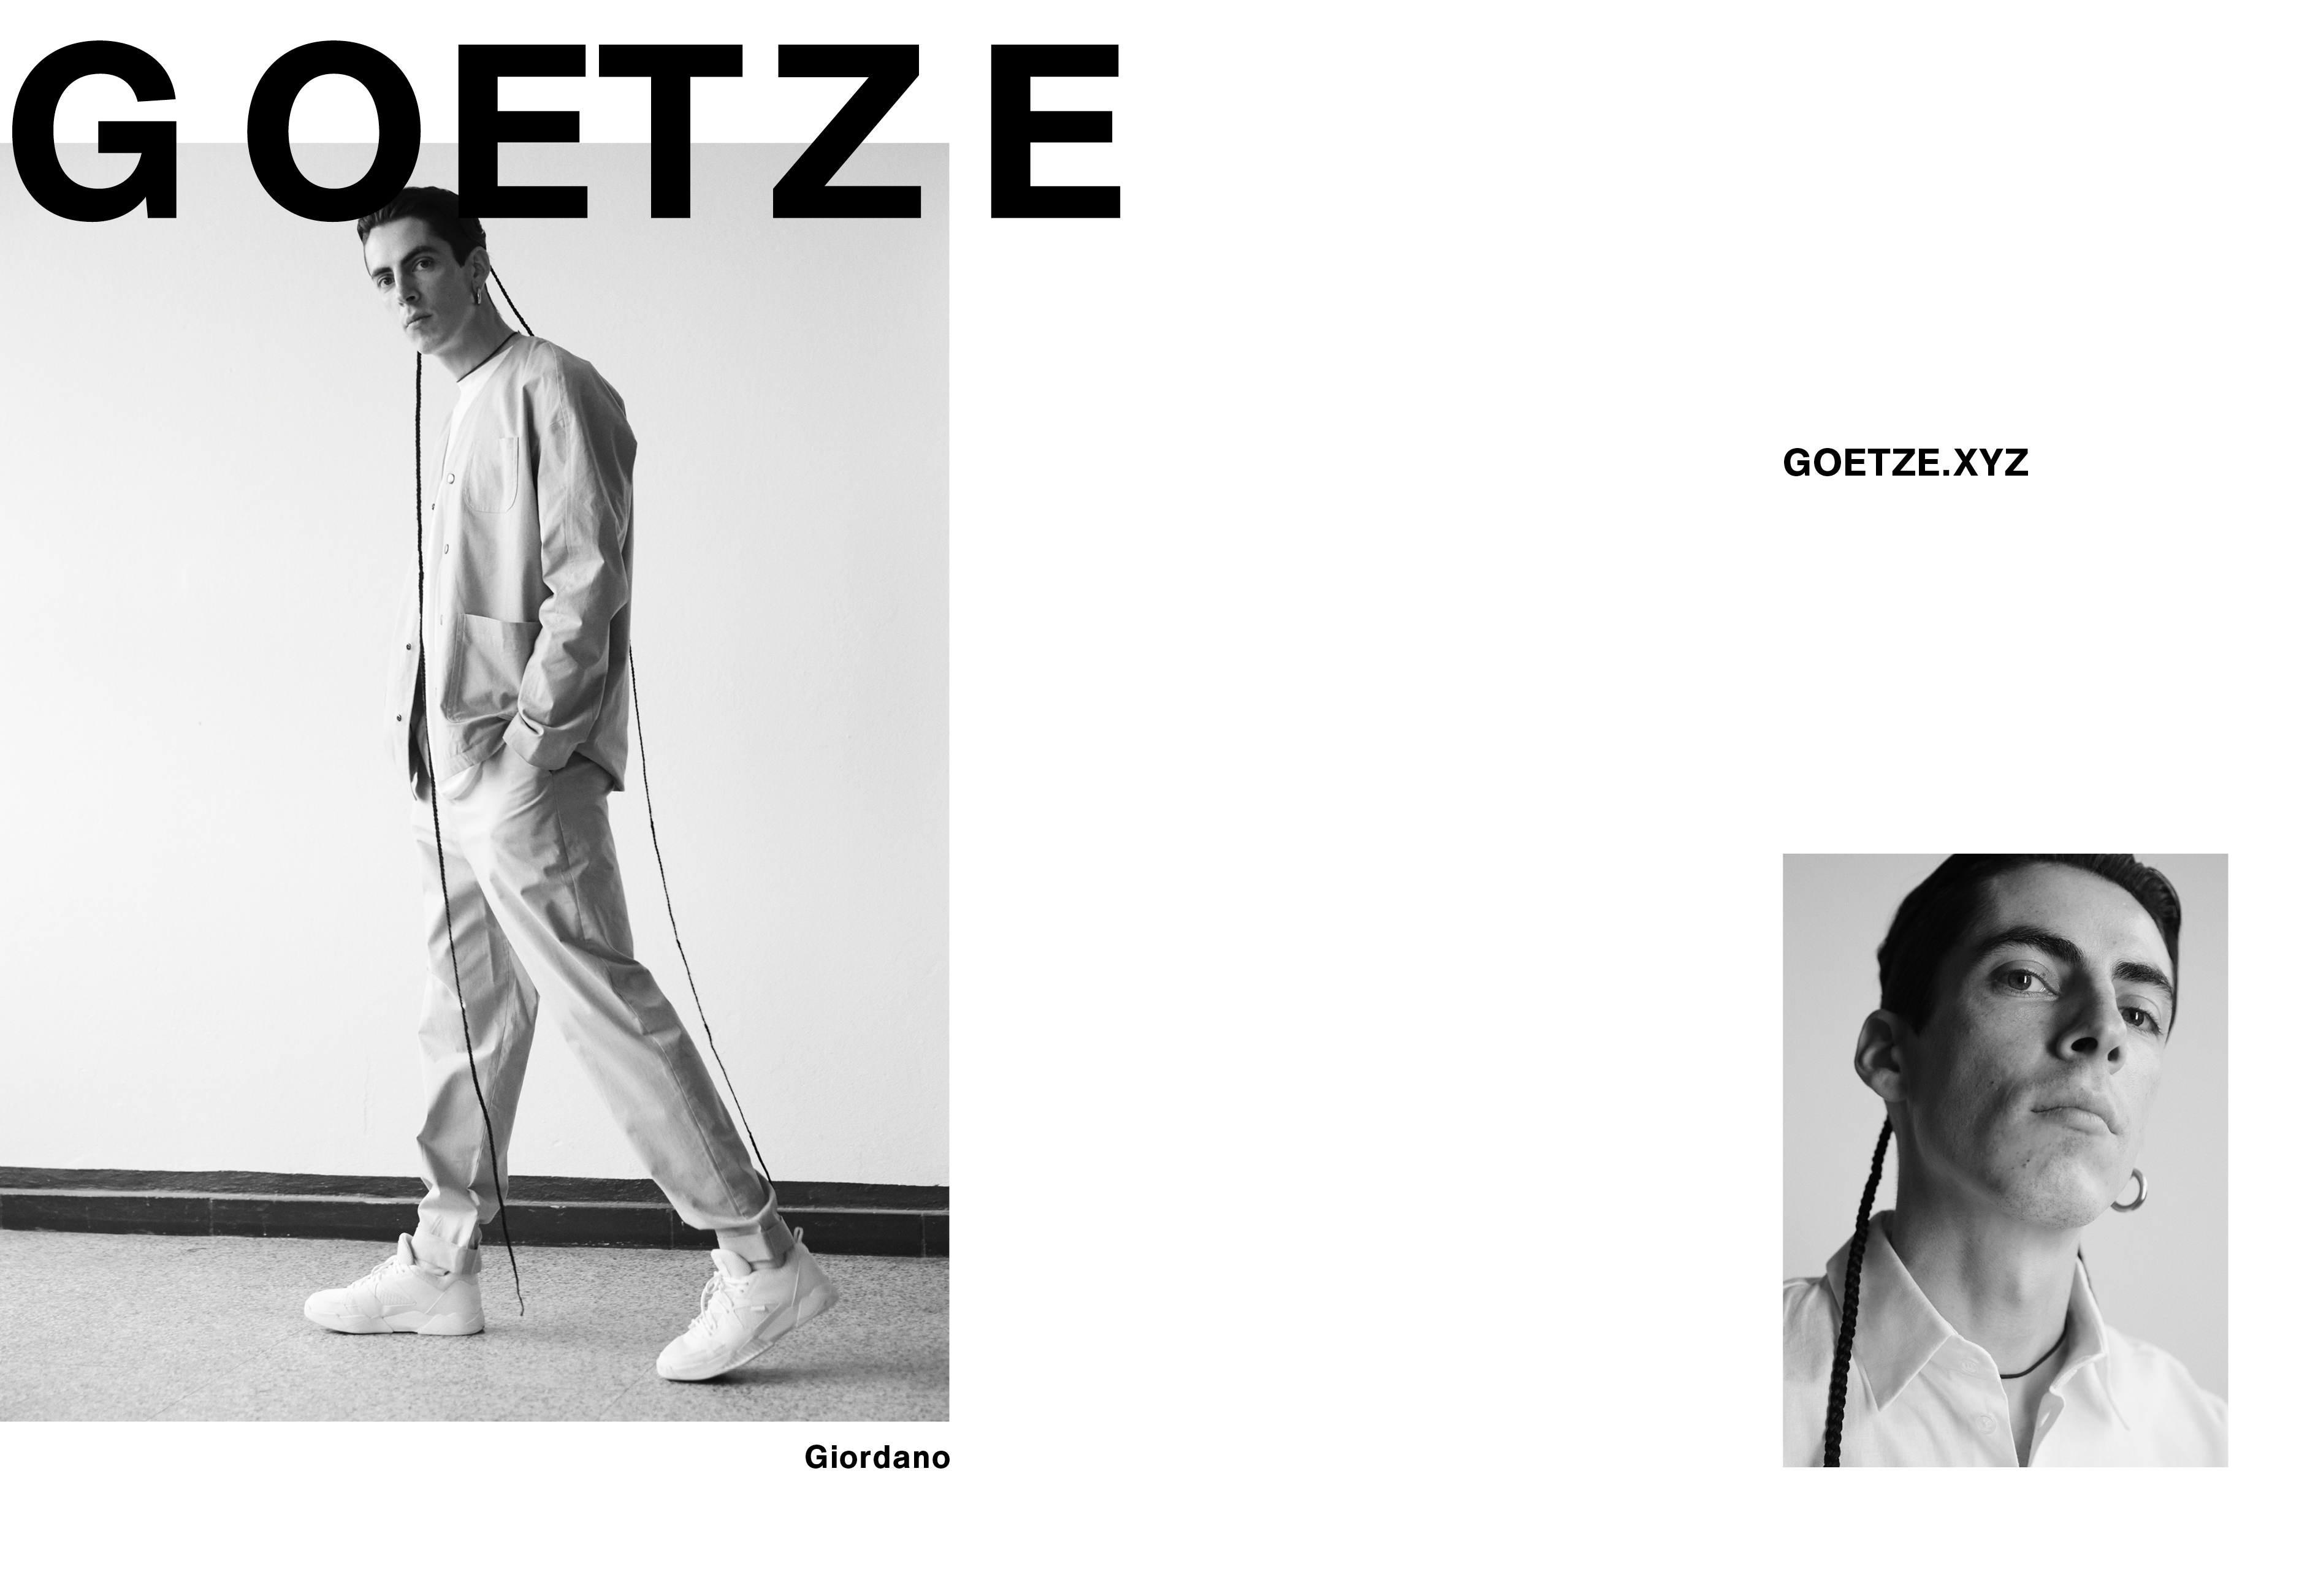 OLIVER MOORE Art Direction and Graphic Design  Torstrasse 98 10119 Berlin  studio@olivermoore.de +49 177 7466676 GOETZE campaign SS17